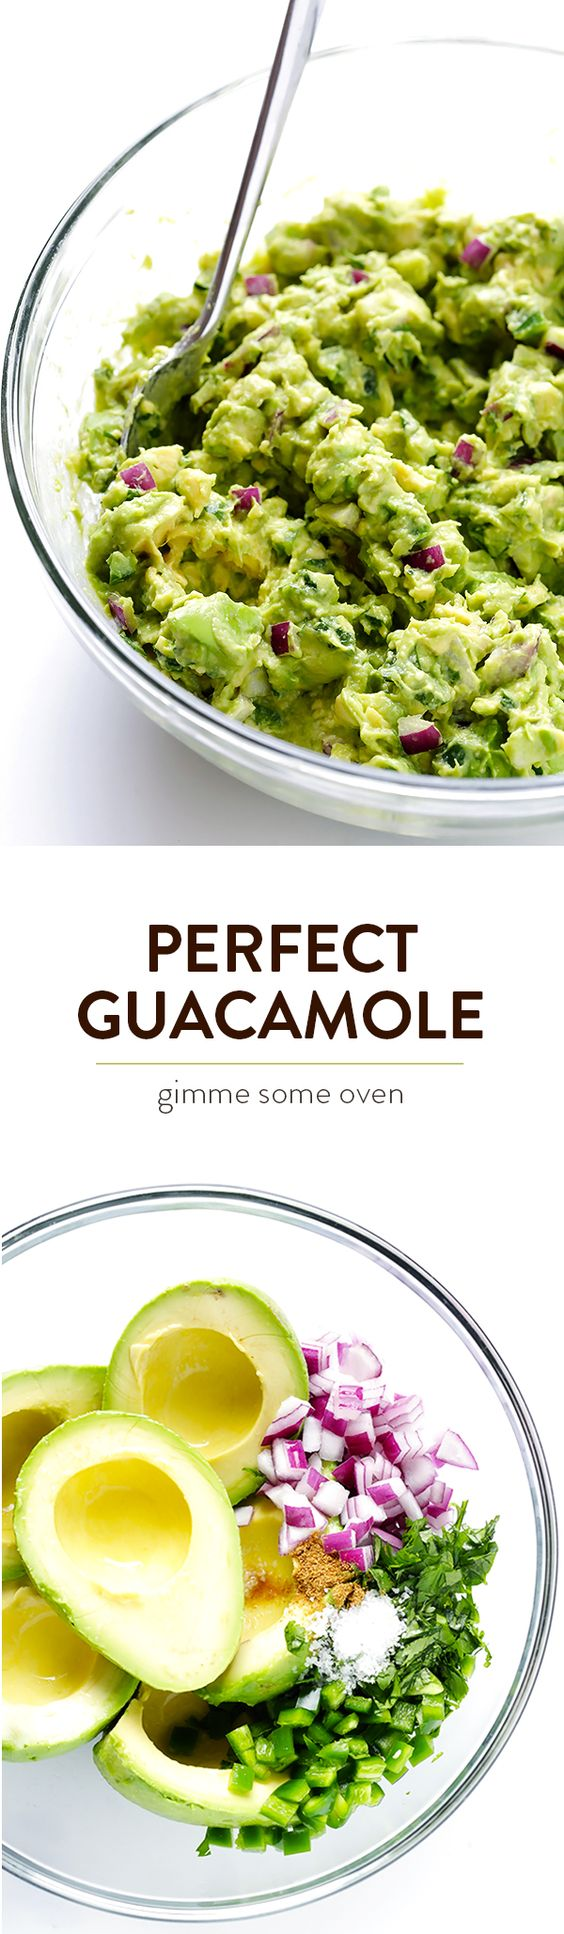 dip guacamole perfect guacamole recipe for guacamole dips guacamole ...